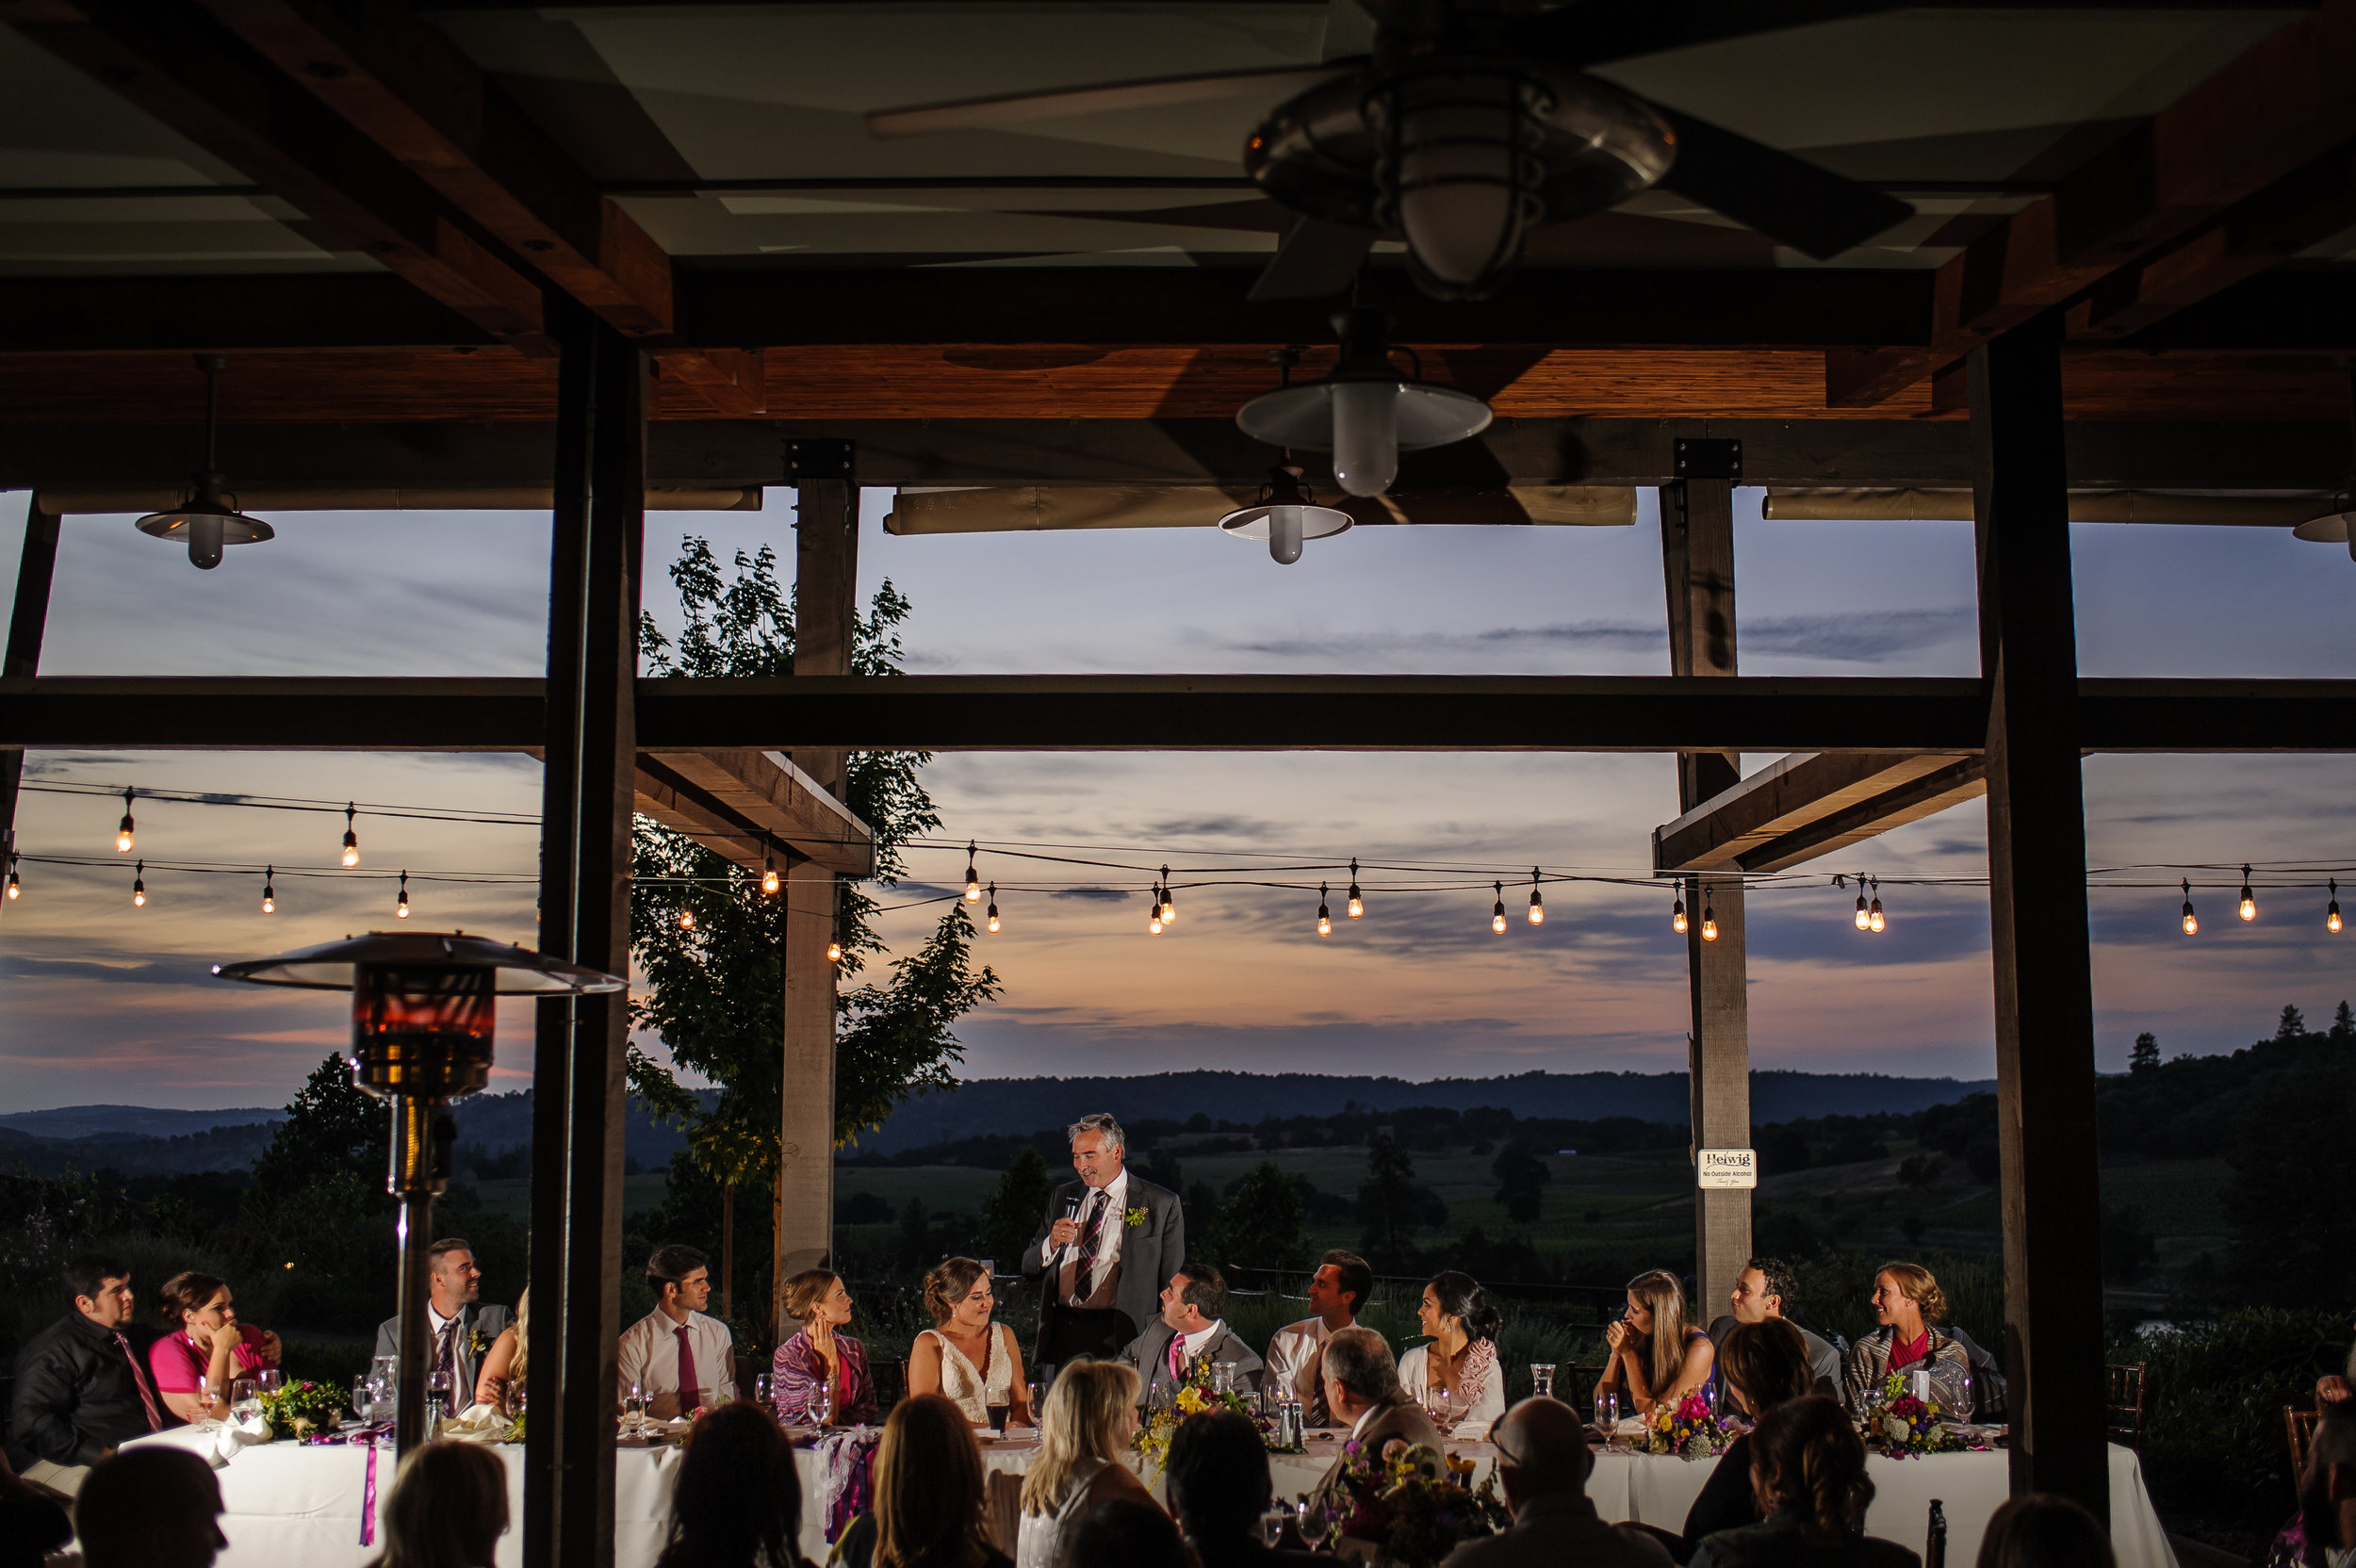 Father of the Bride toast during wedding at Helwig Winery in Plymouth California.